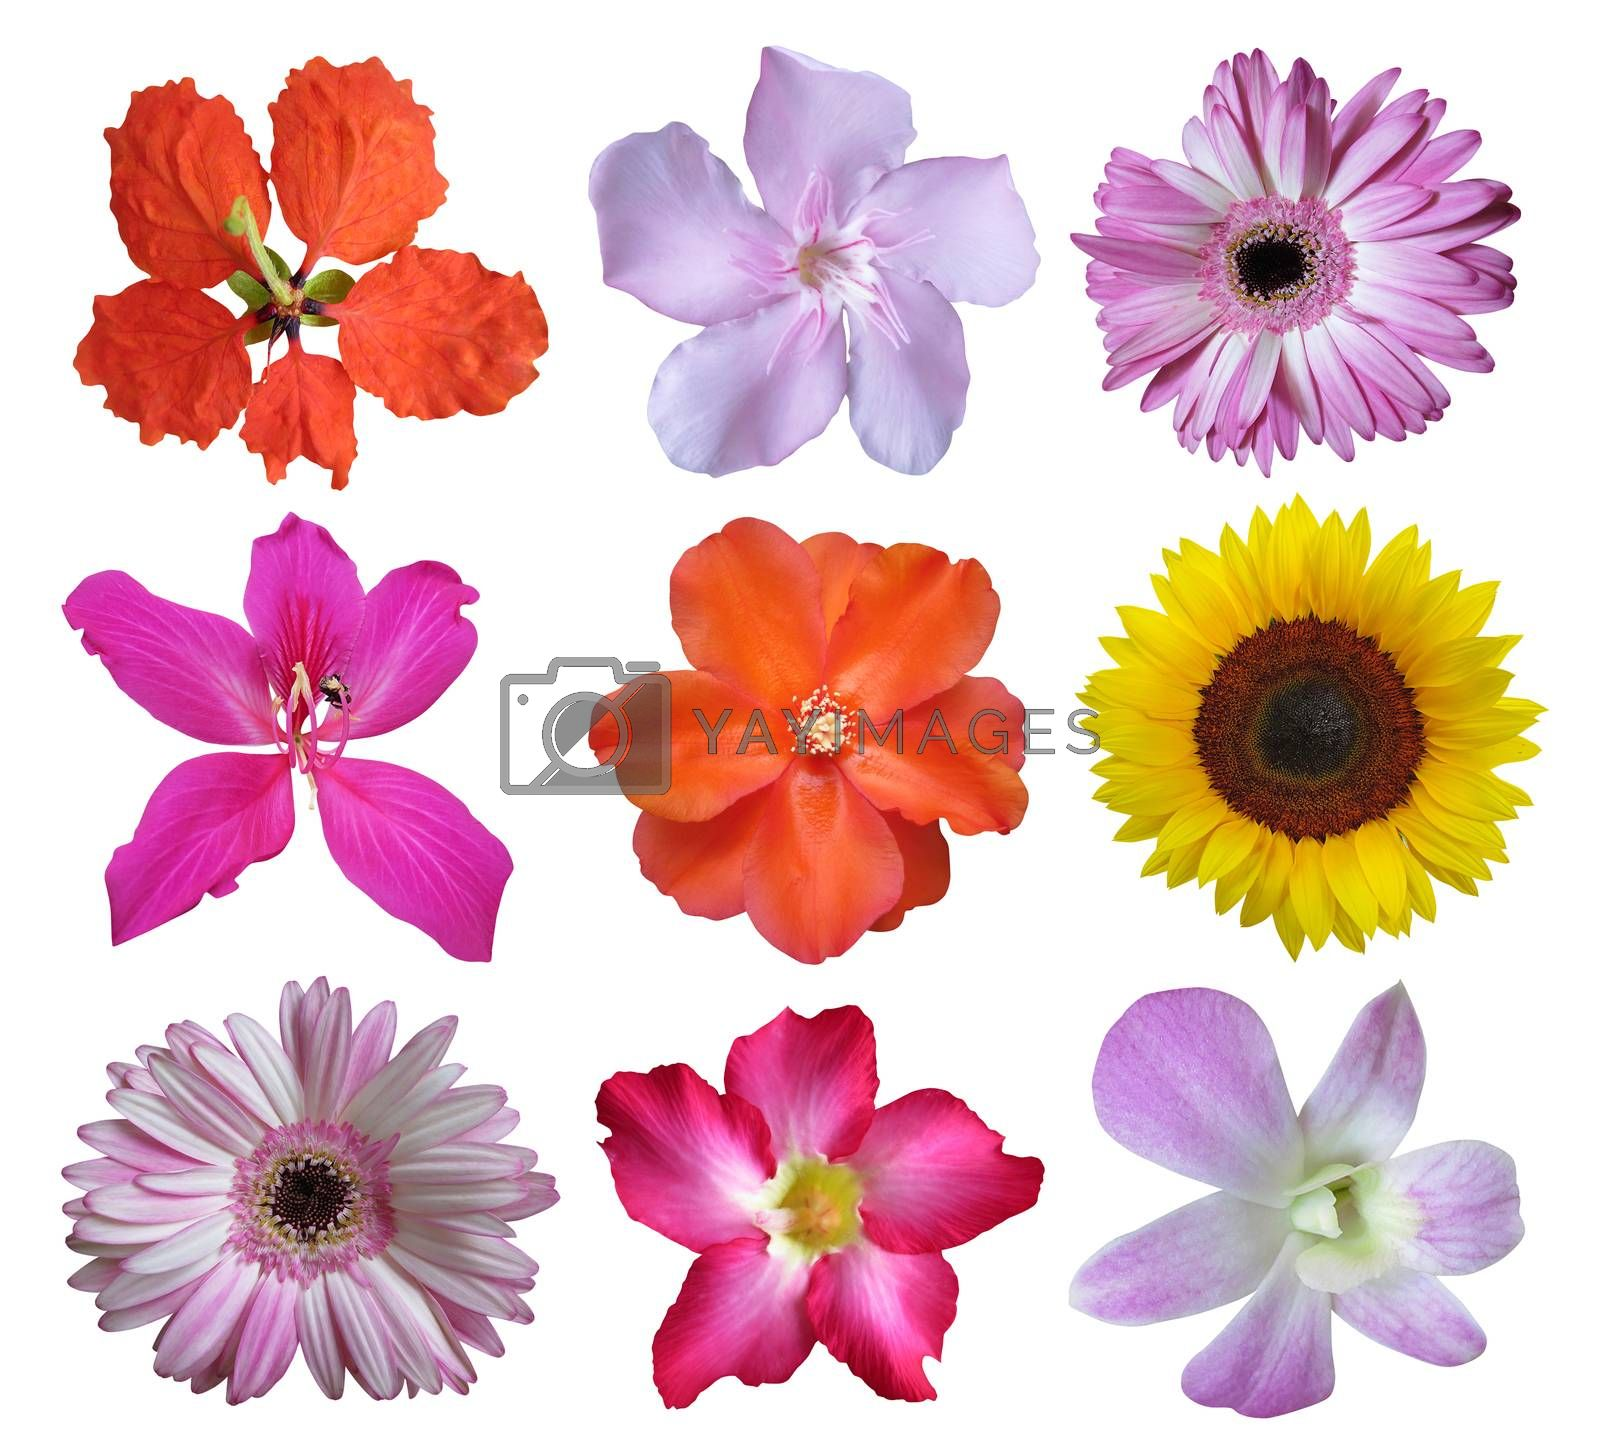 Flower collection isolated on white background